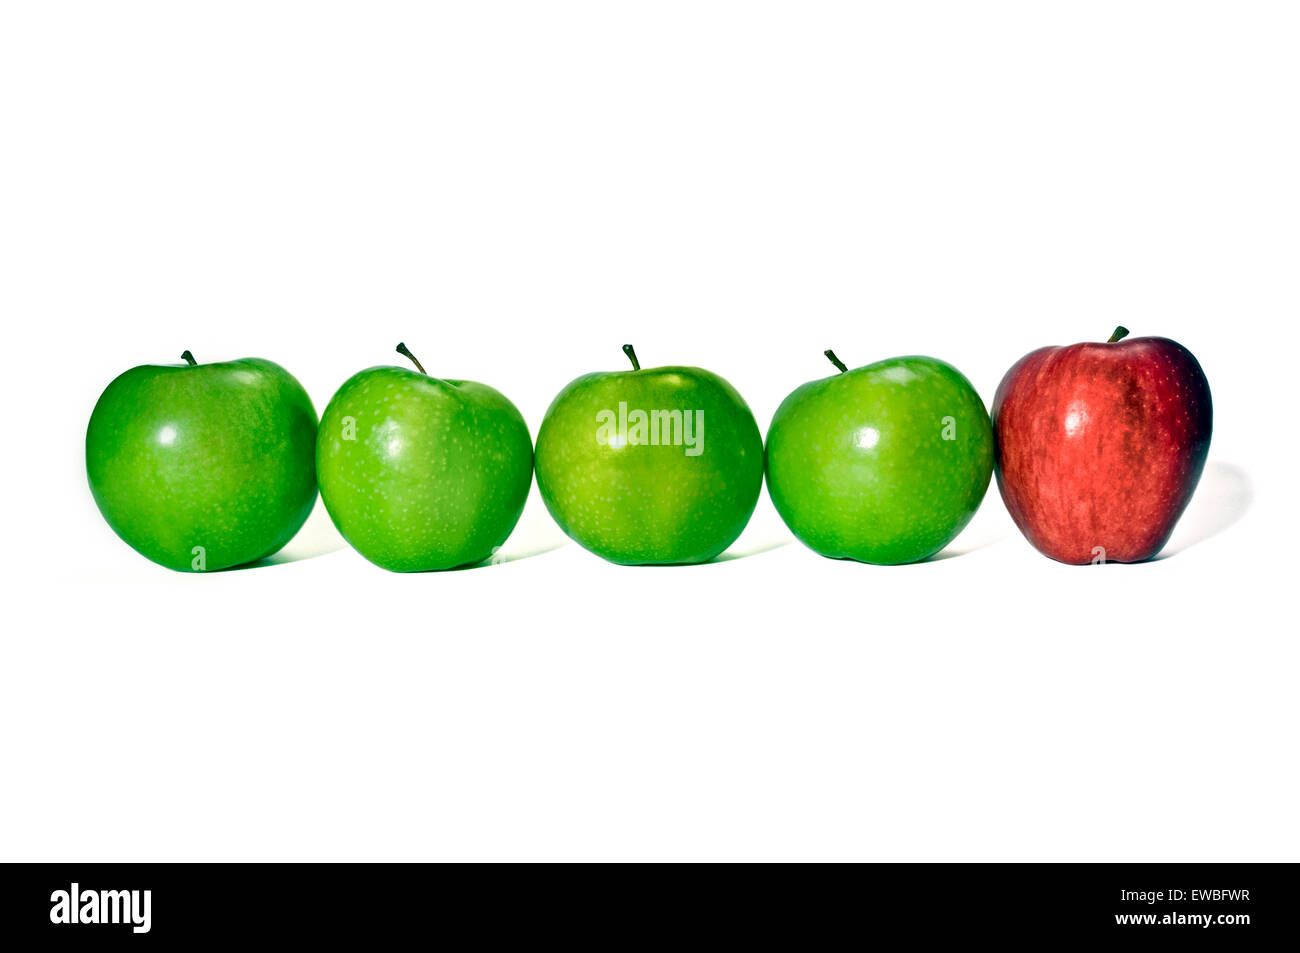 Odd One Out.  Row of green apples with red apple on the end.  Concept of being different or different lifestyle - Stock Image